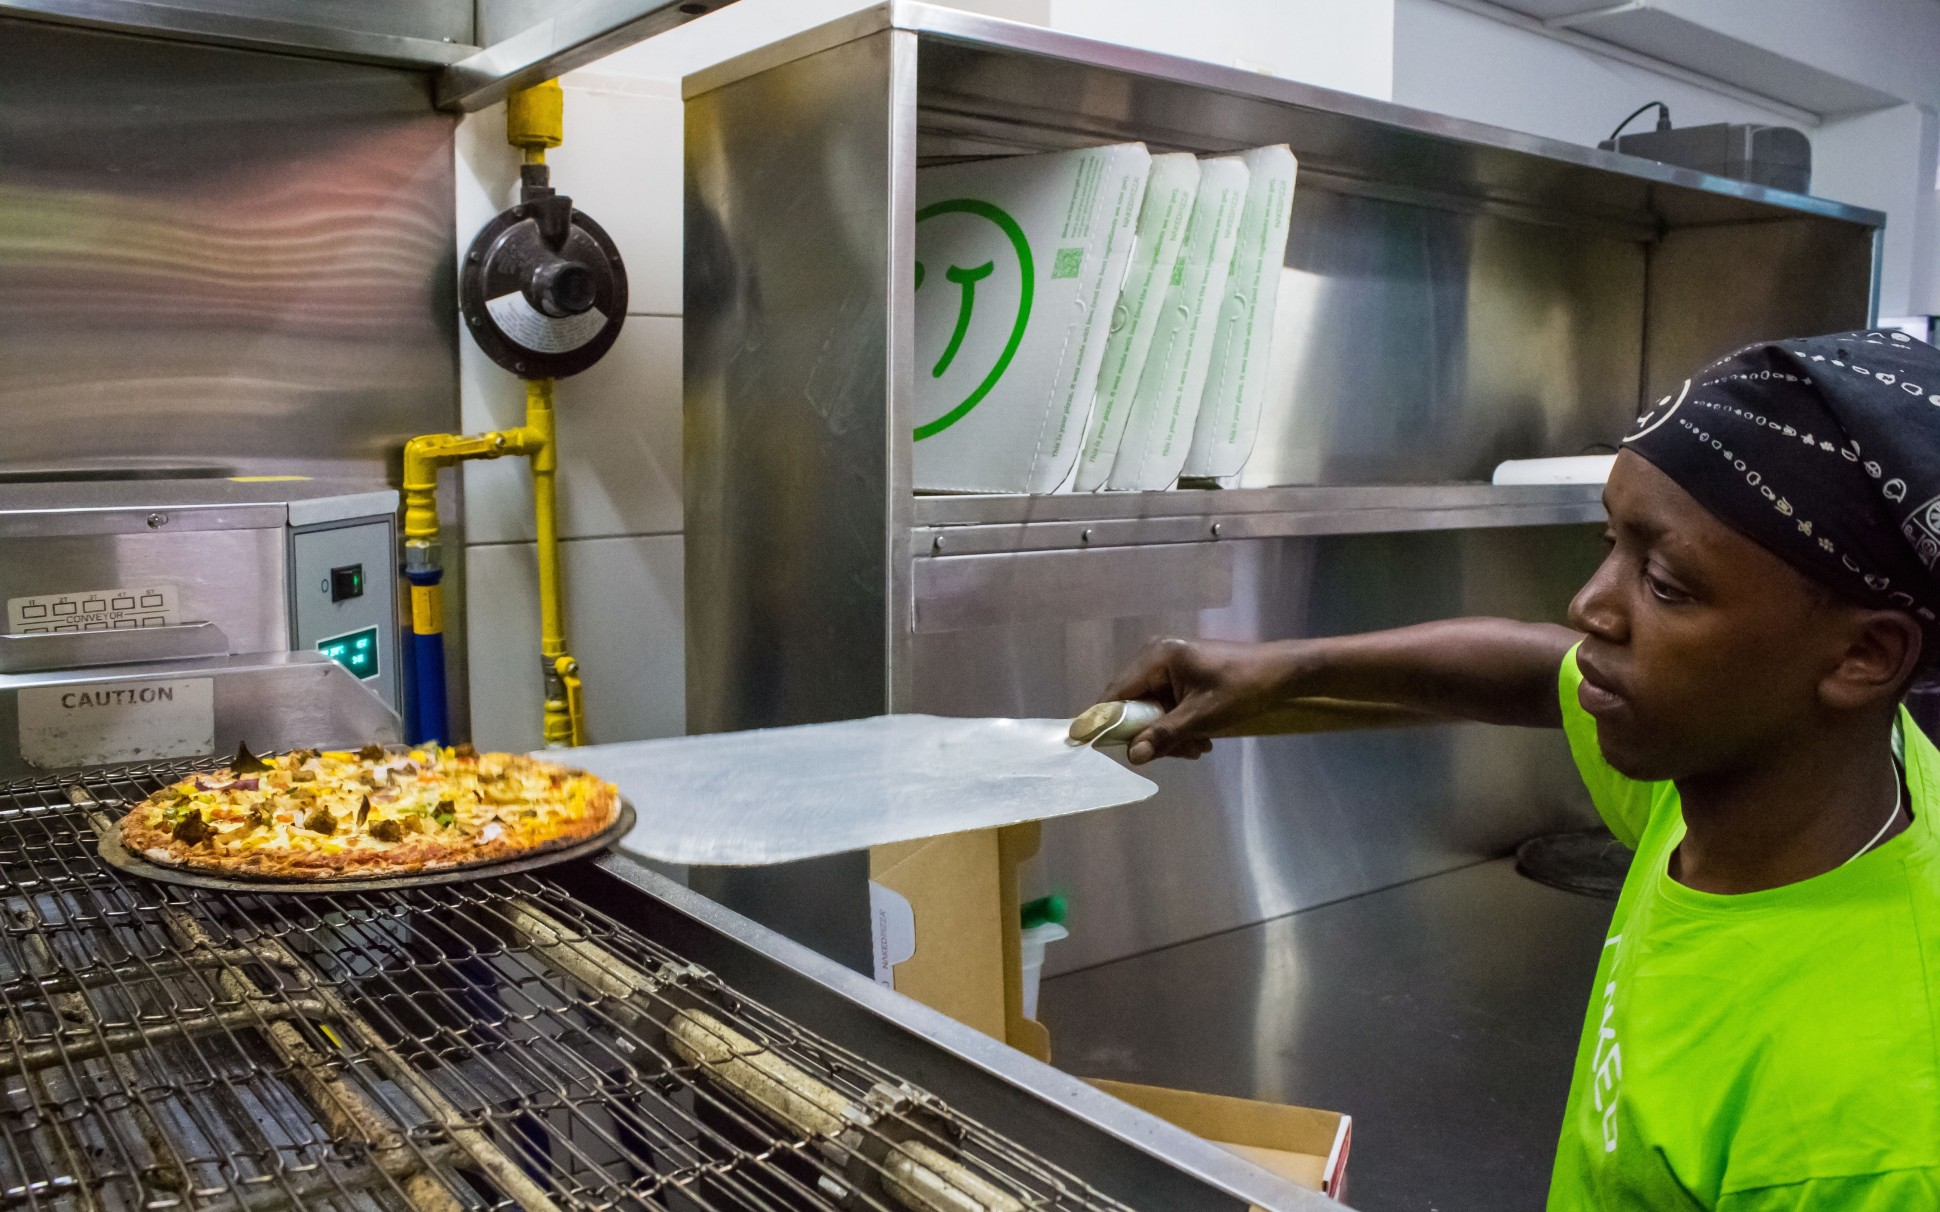 Naked Pizza in Nairobi, via Forbes